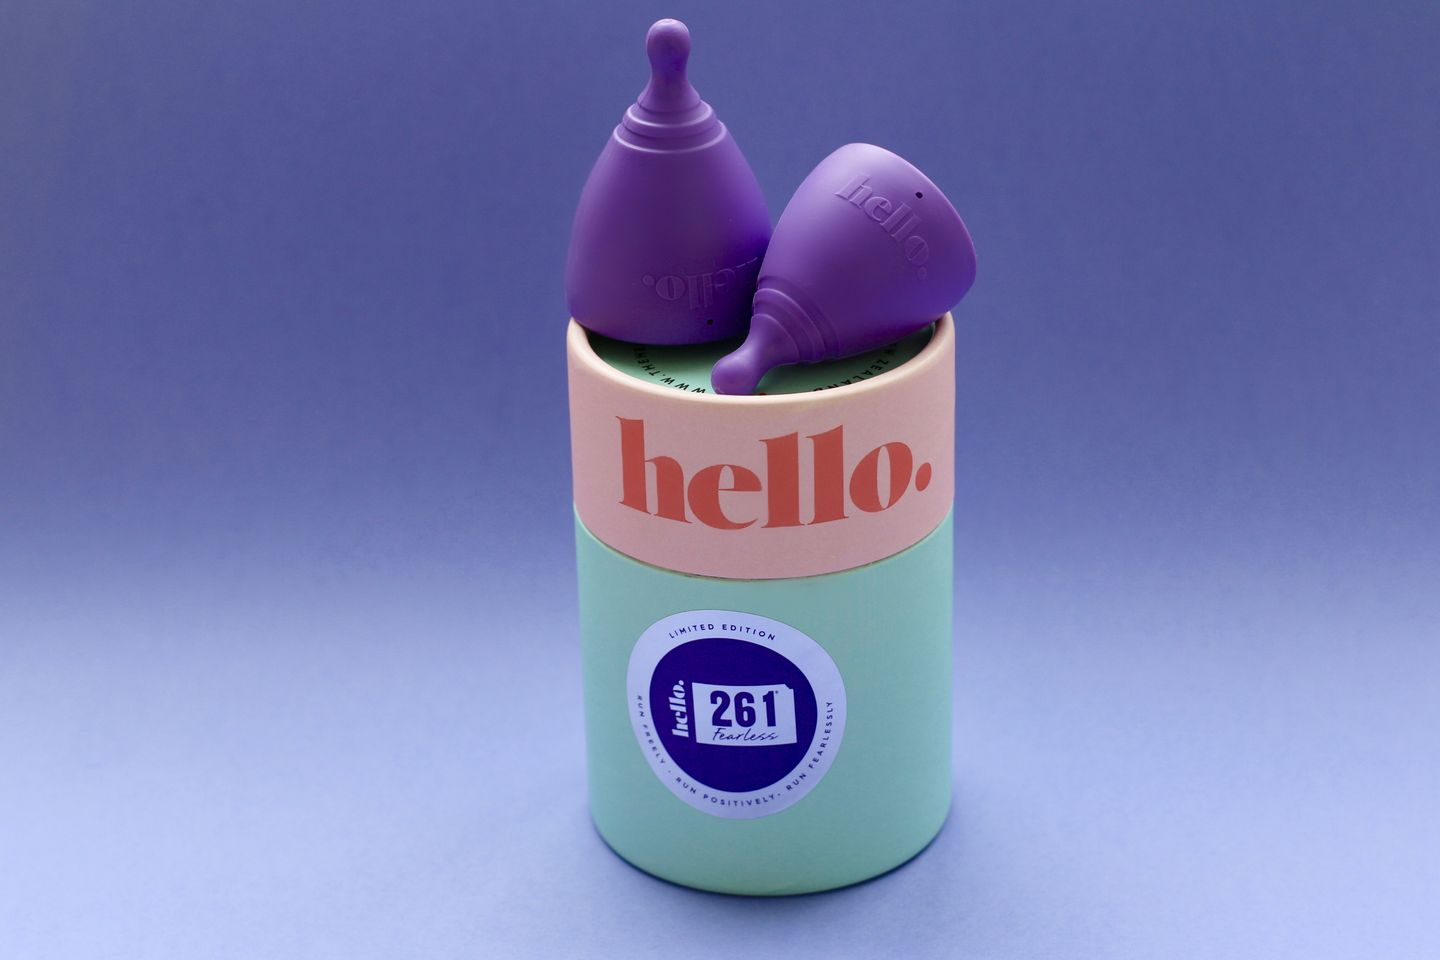 Hello cup - 261 Fearless colour